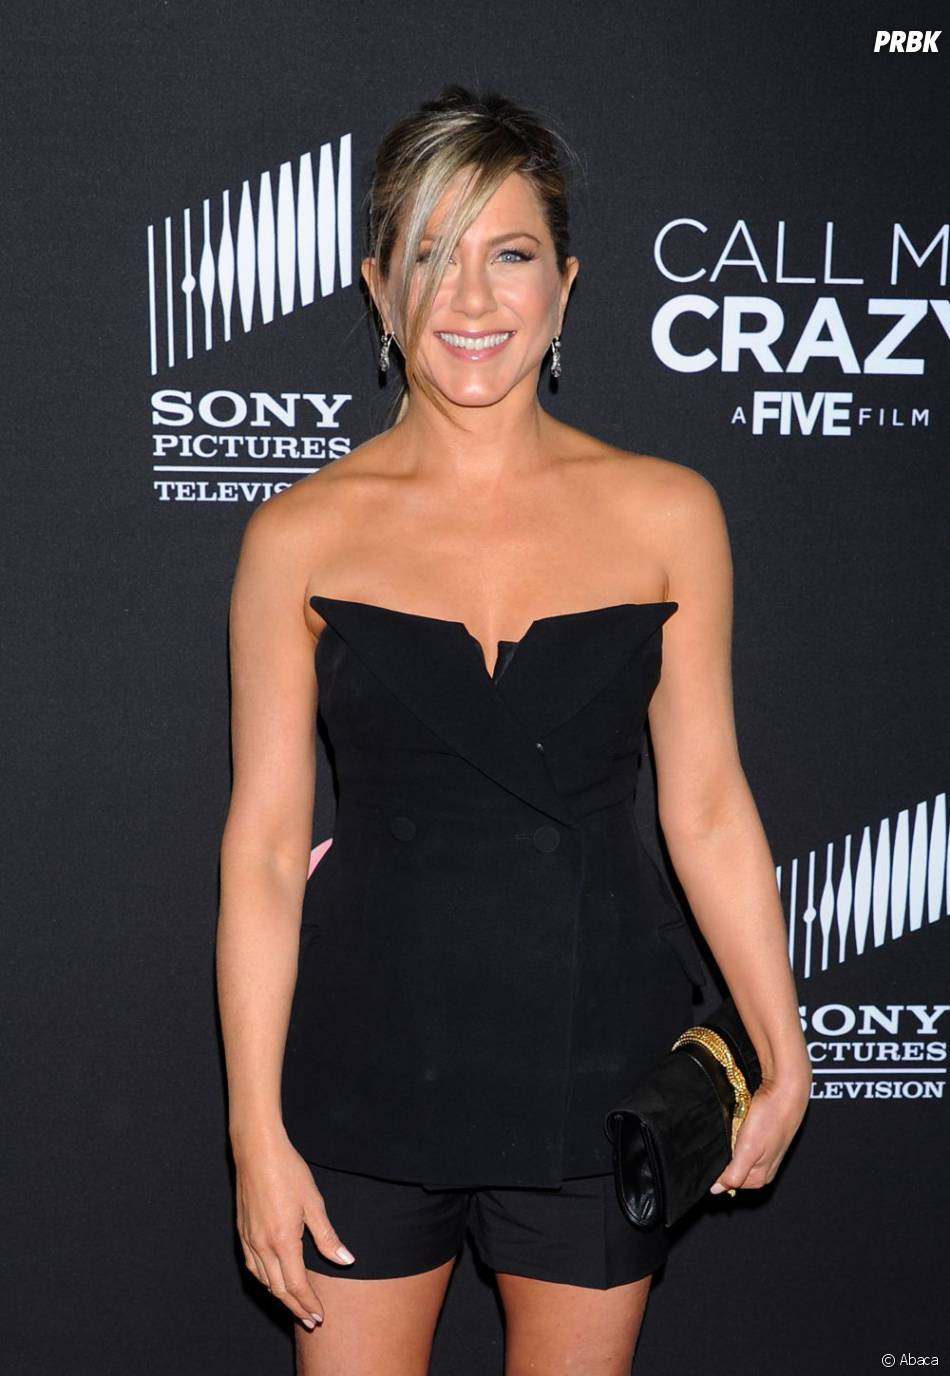 For the Jennifer aniston nue sexy apologise